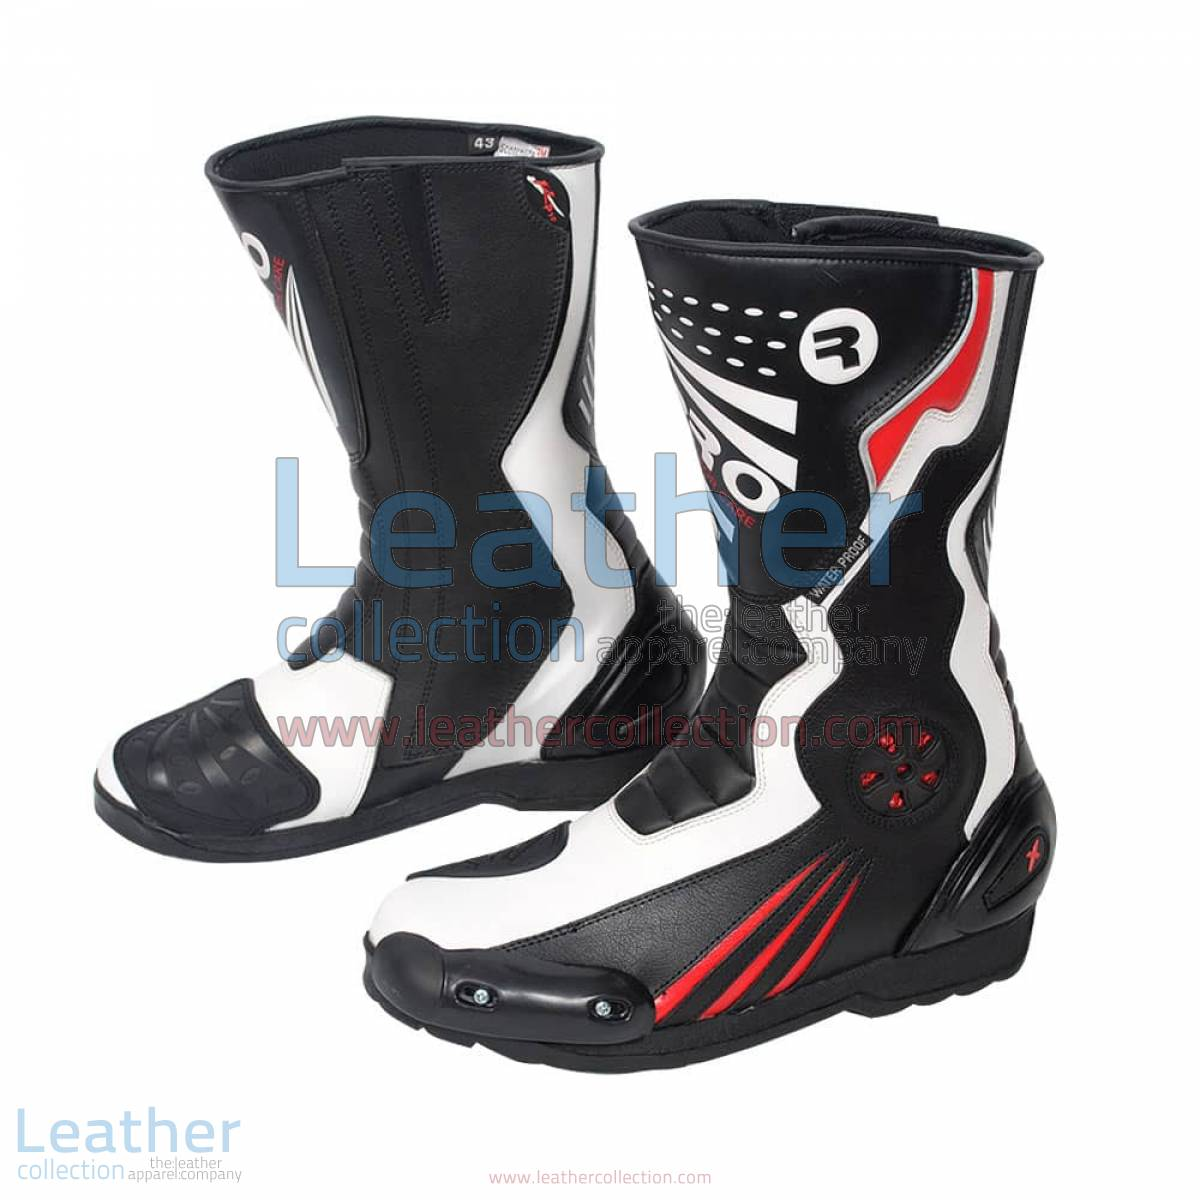 Scorpio Motorbike Riding Boots | riding boots,motorcycle riding boots